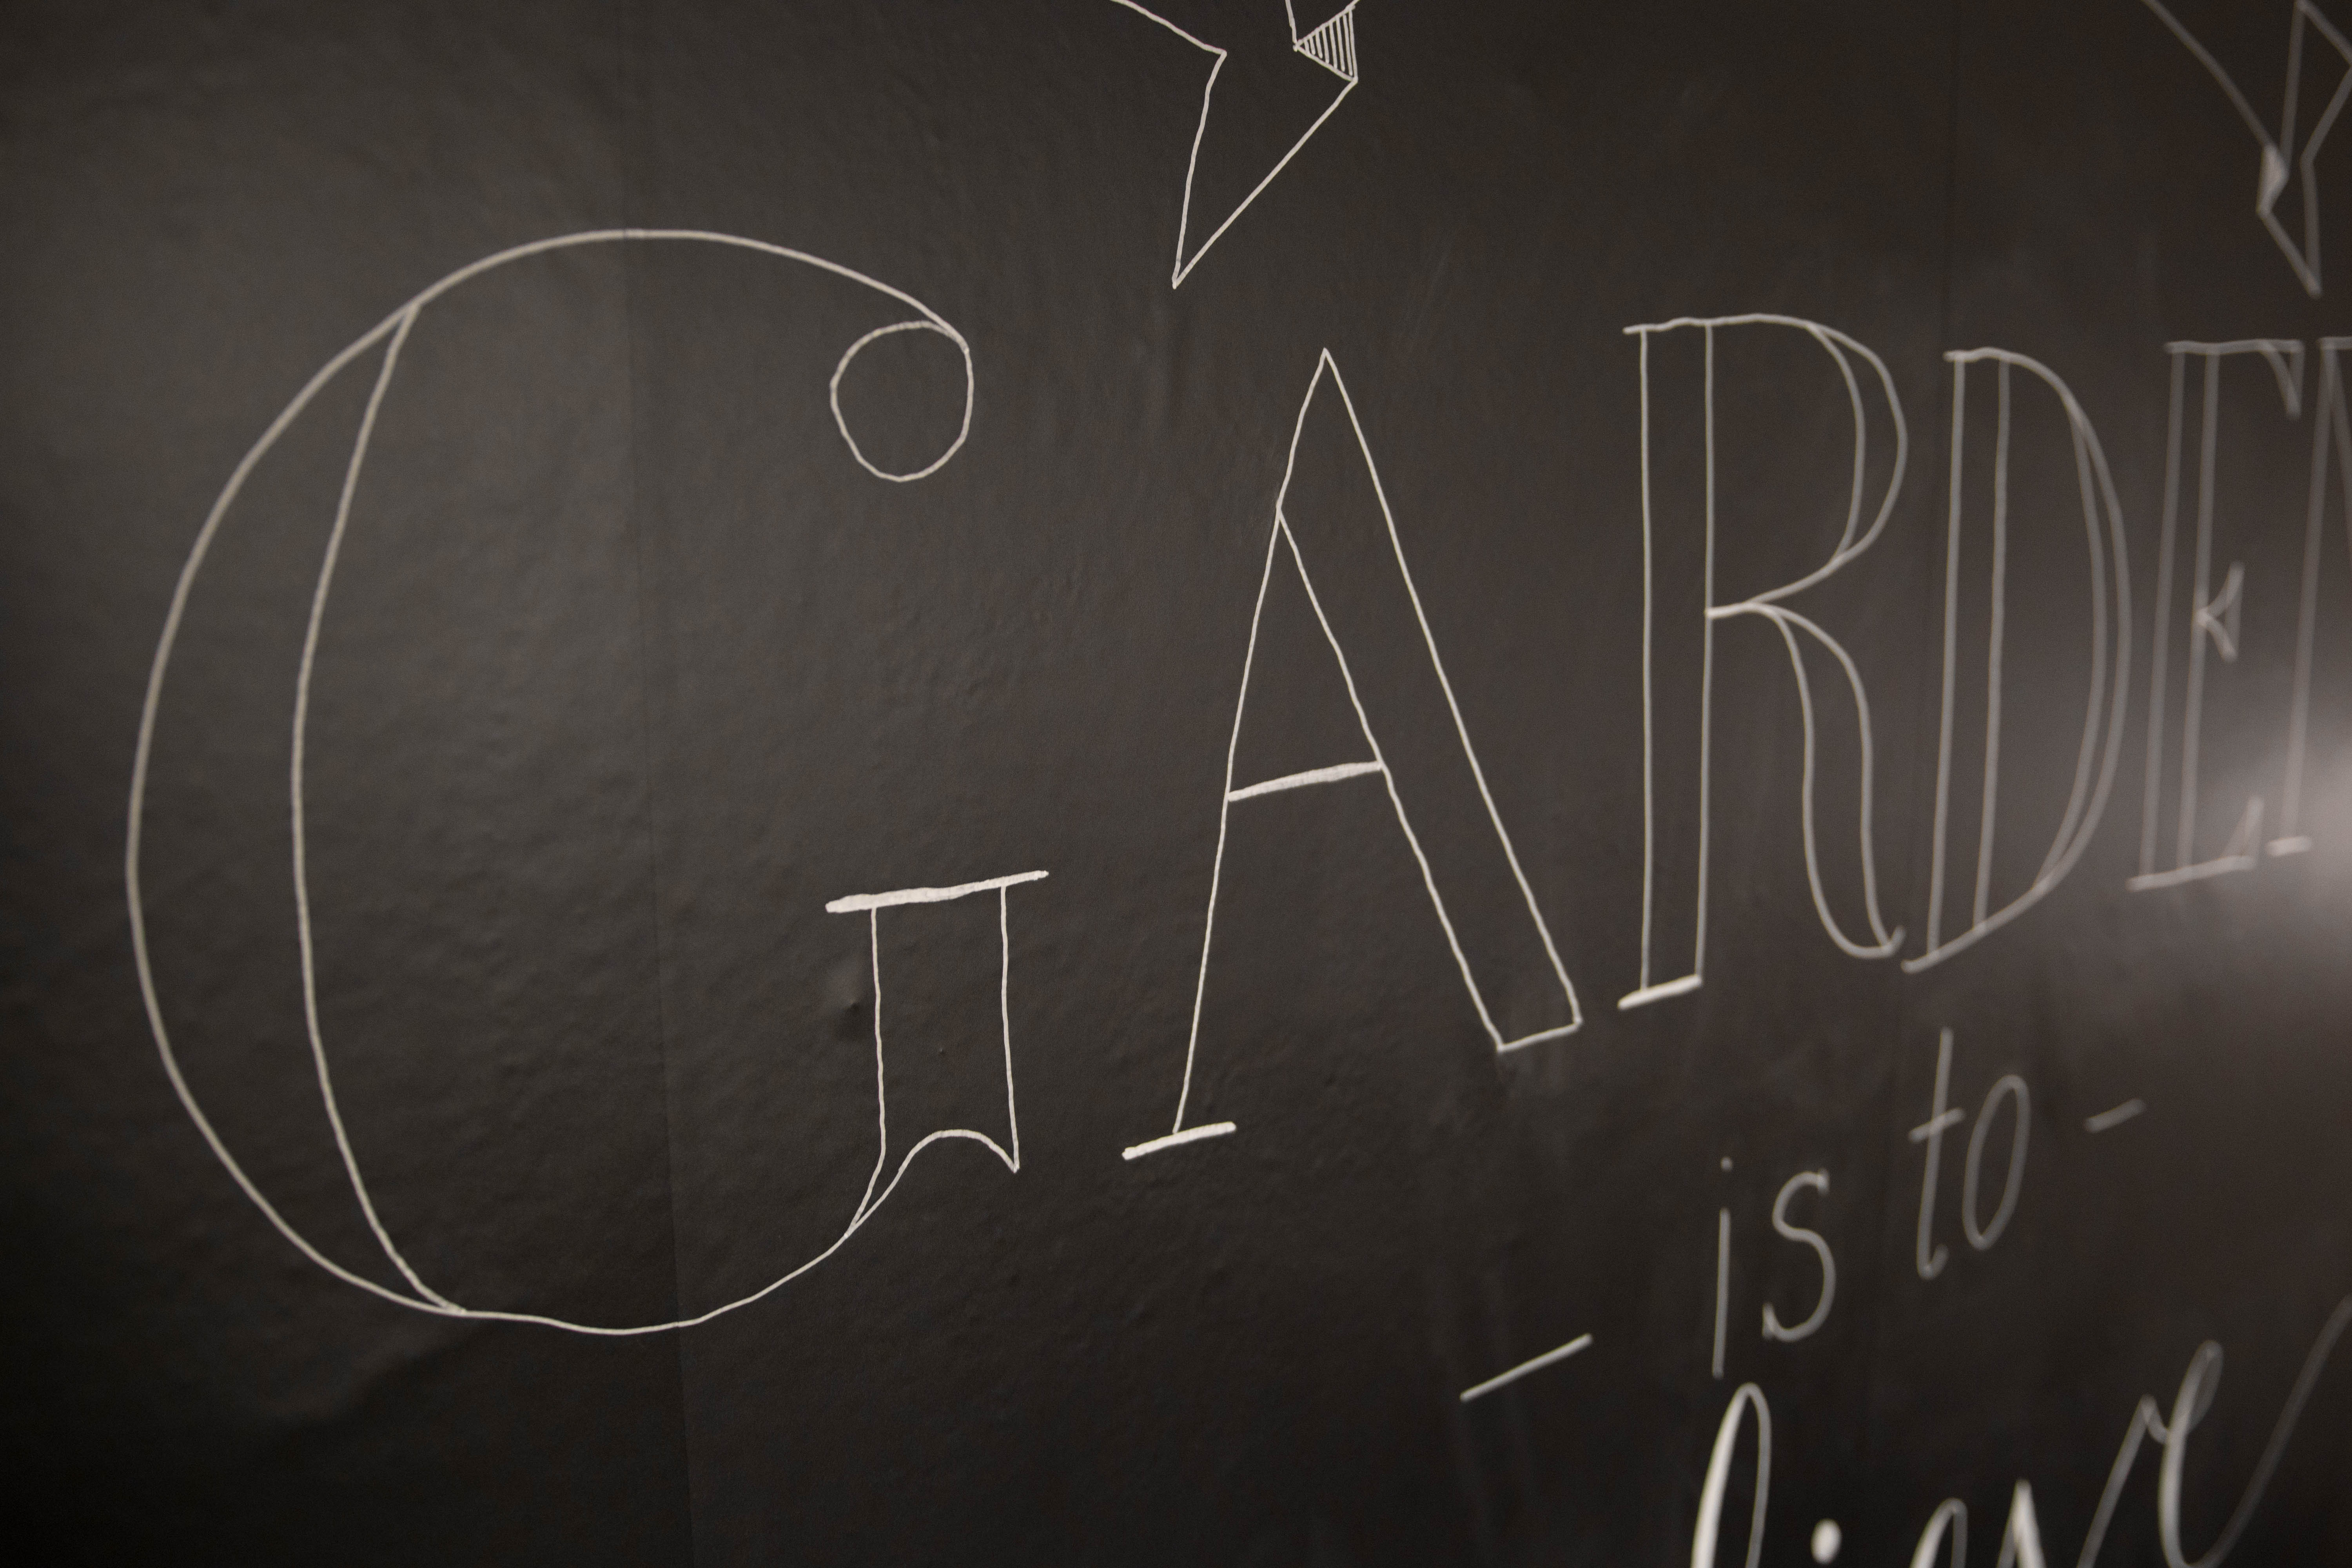 Hand Lettering on Chalkboard Peel and Stick Wallpaper